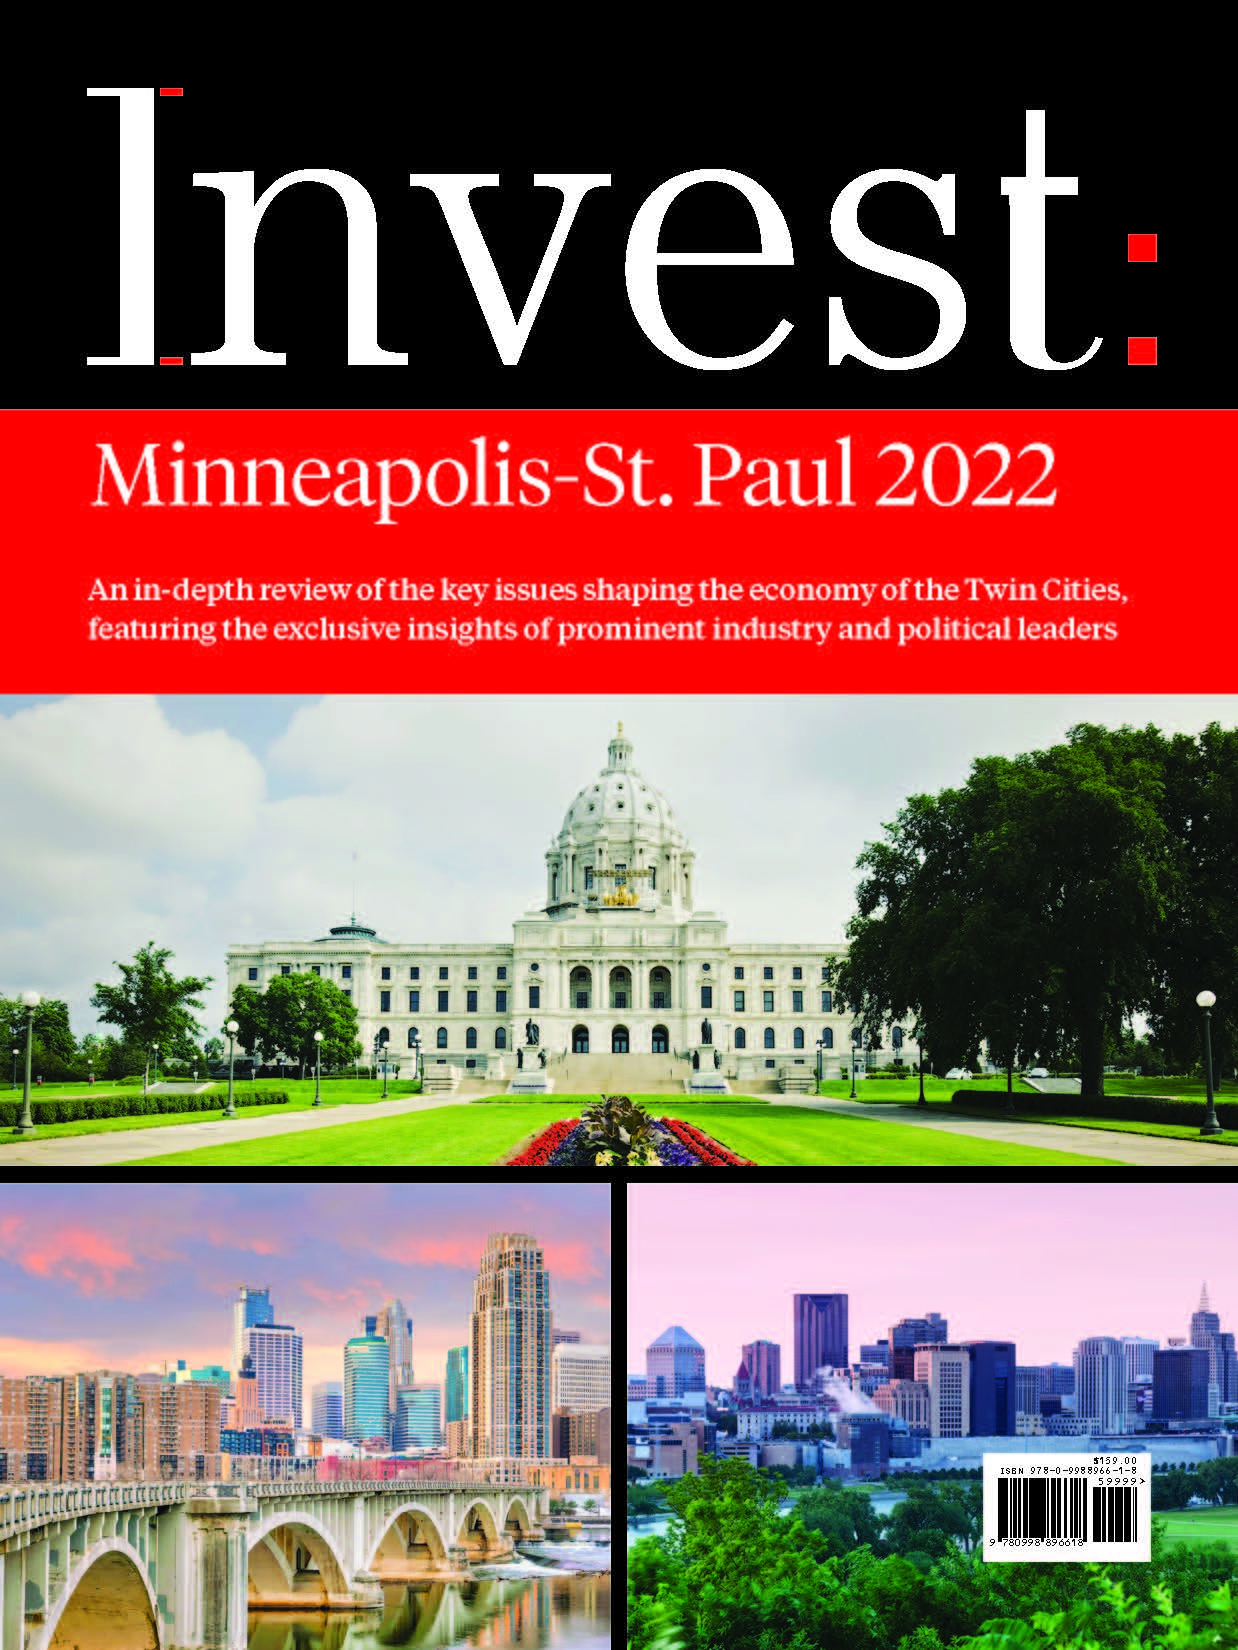 Invest Minneapolis-St. Paul 2022 Complete Cover Option 1